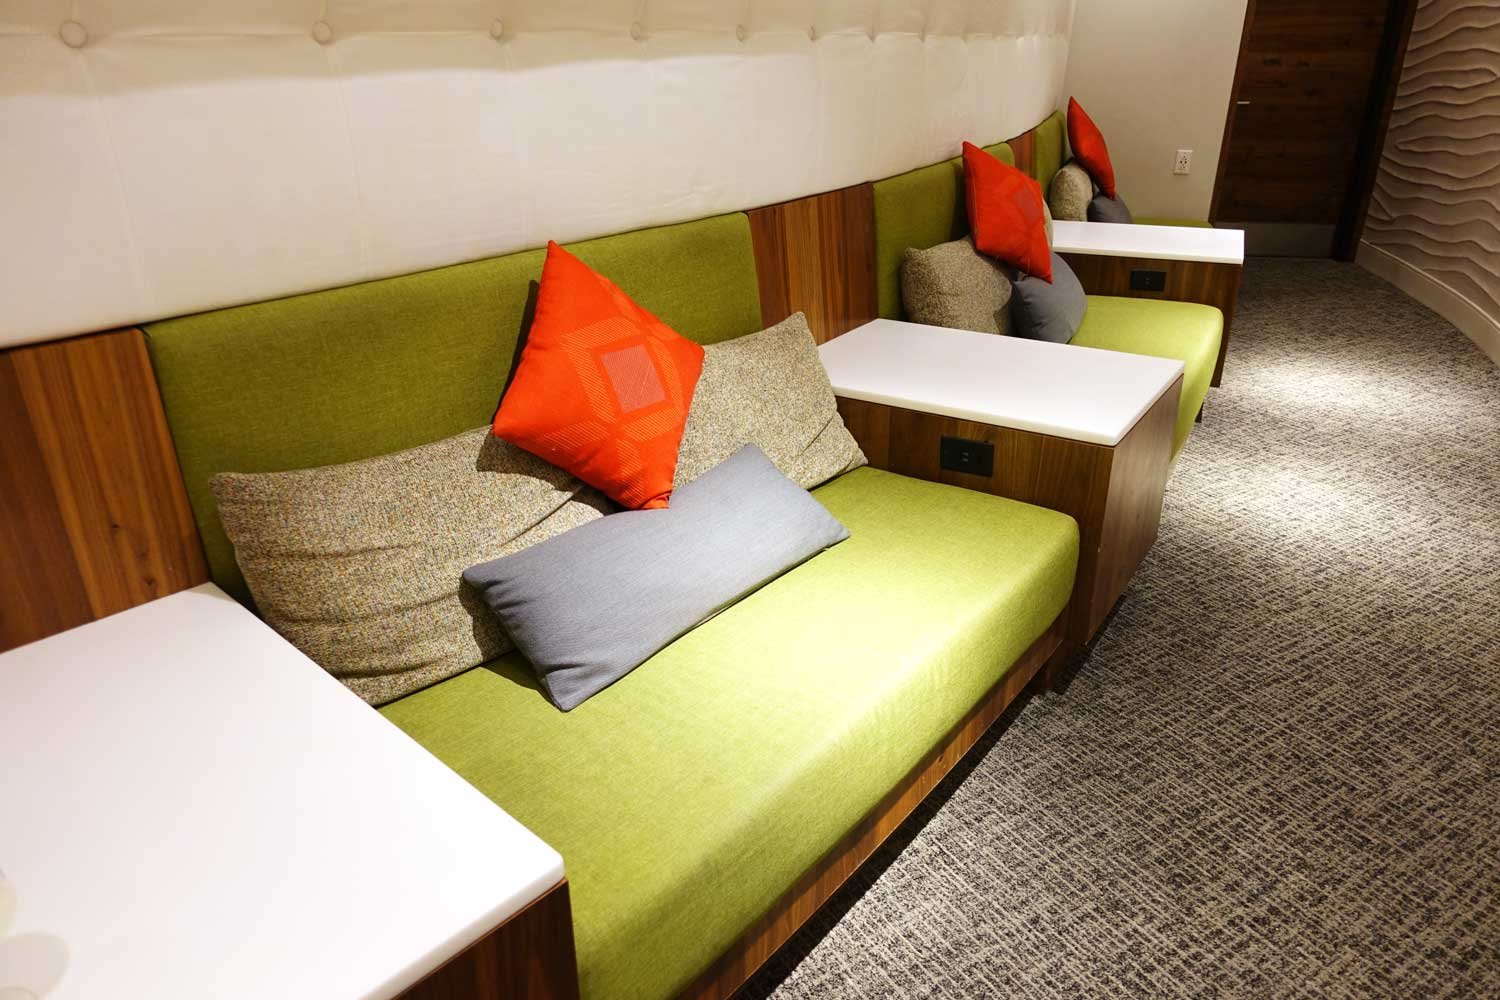 A row of sofas with throw pillows